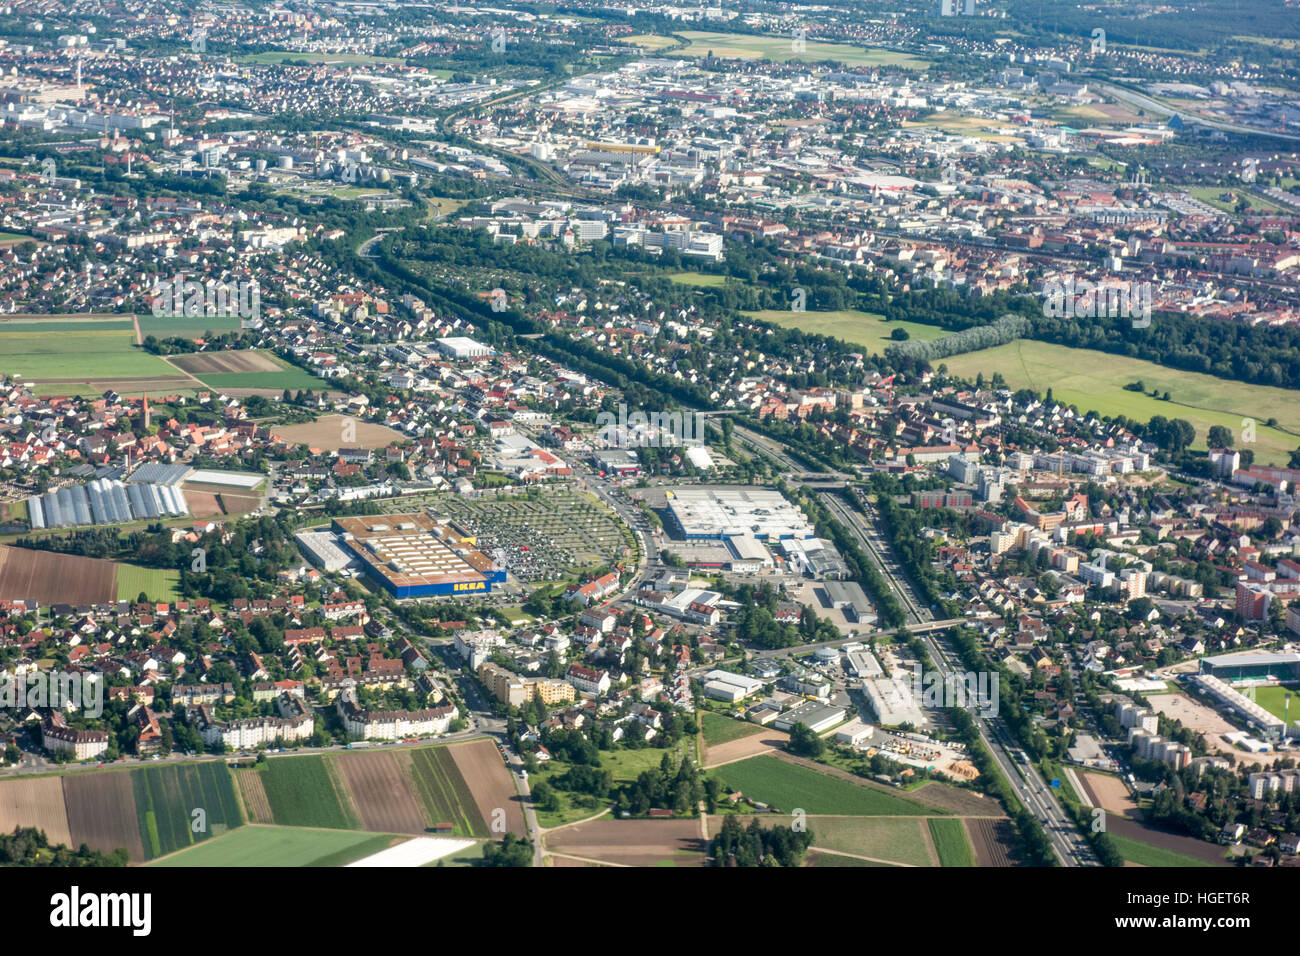 Arial view of Poppenreuth, Fürth in northern Bavaria, Germany, near Nuremberg airport. - Stock Image